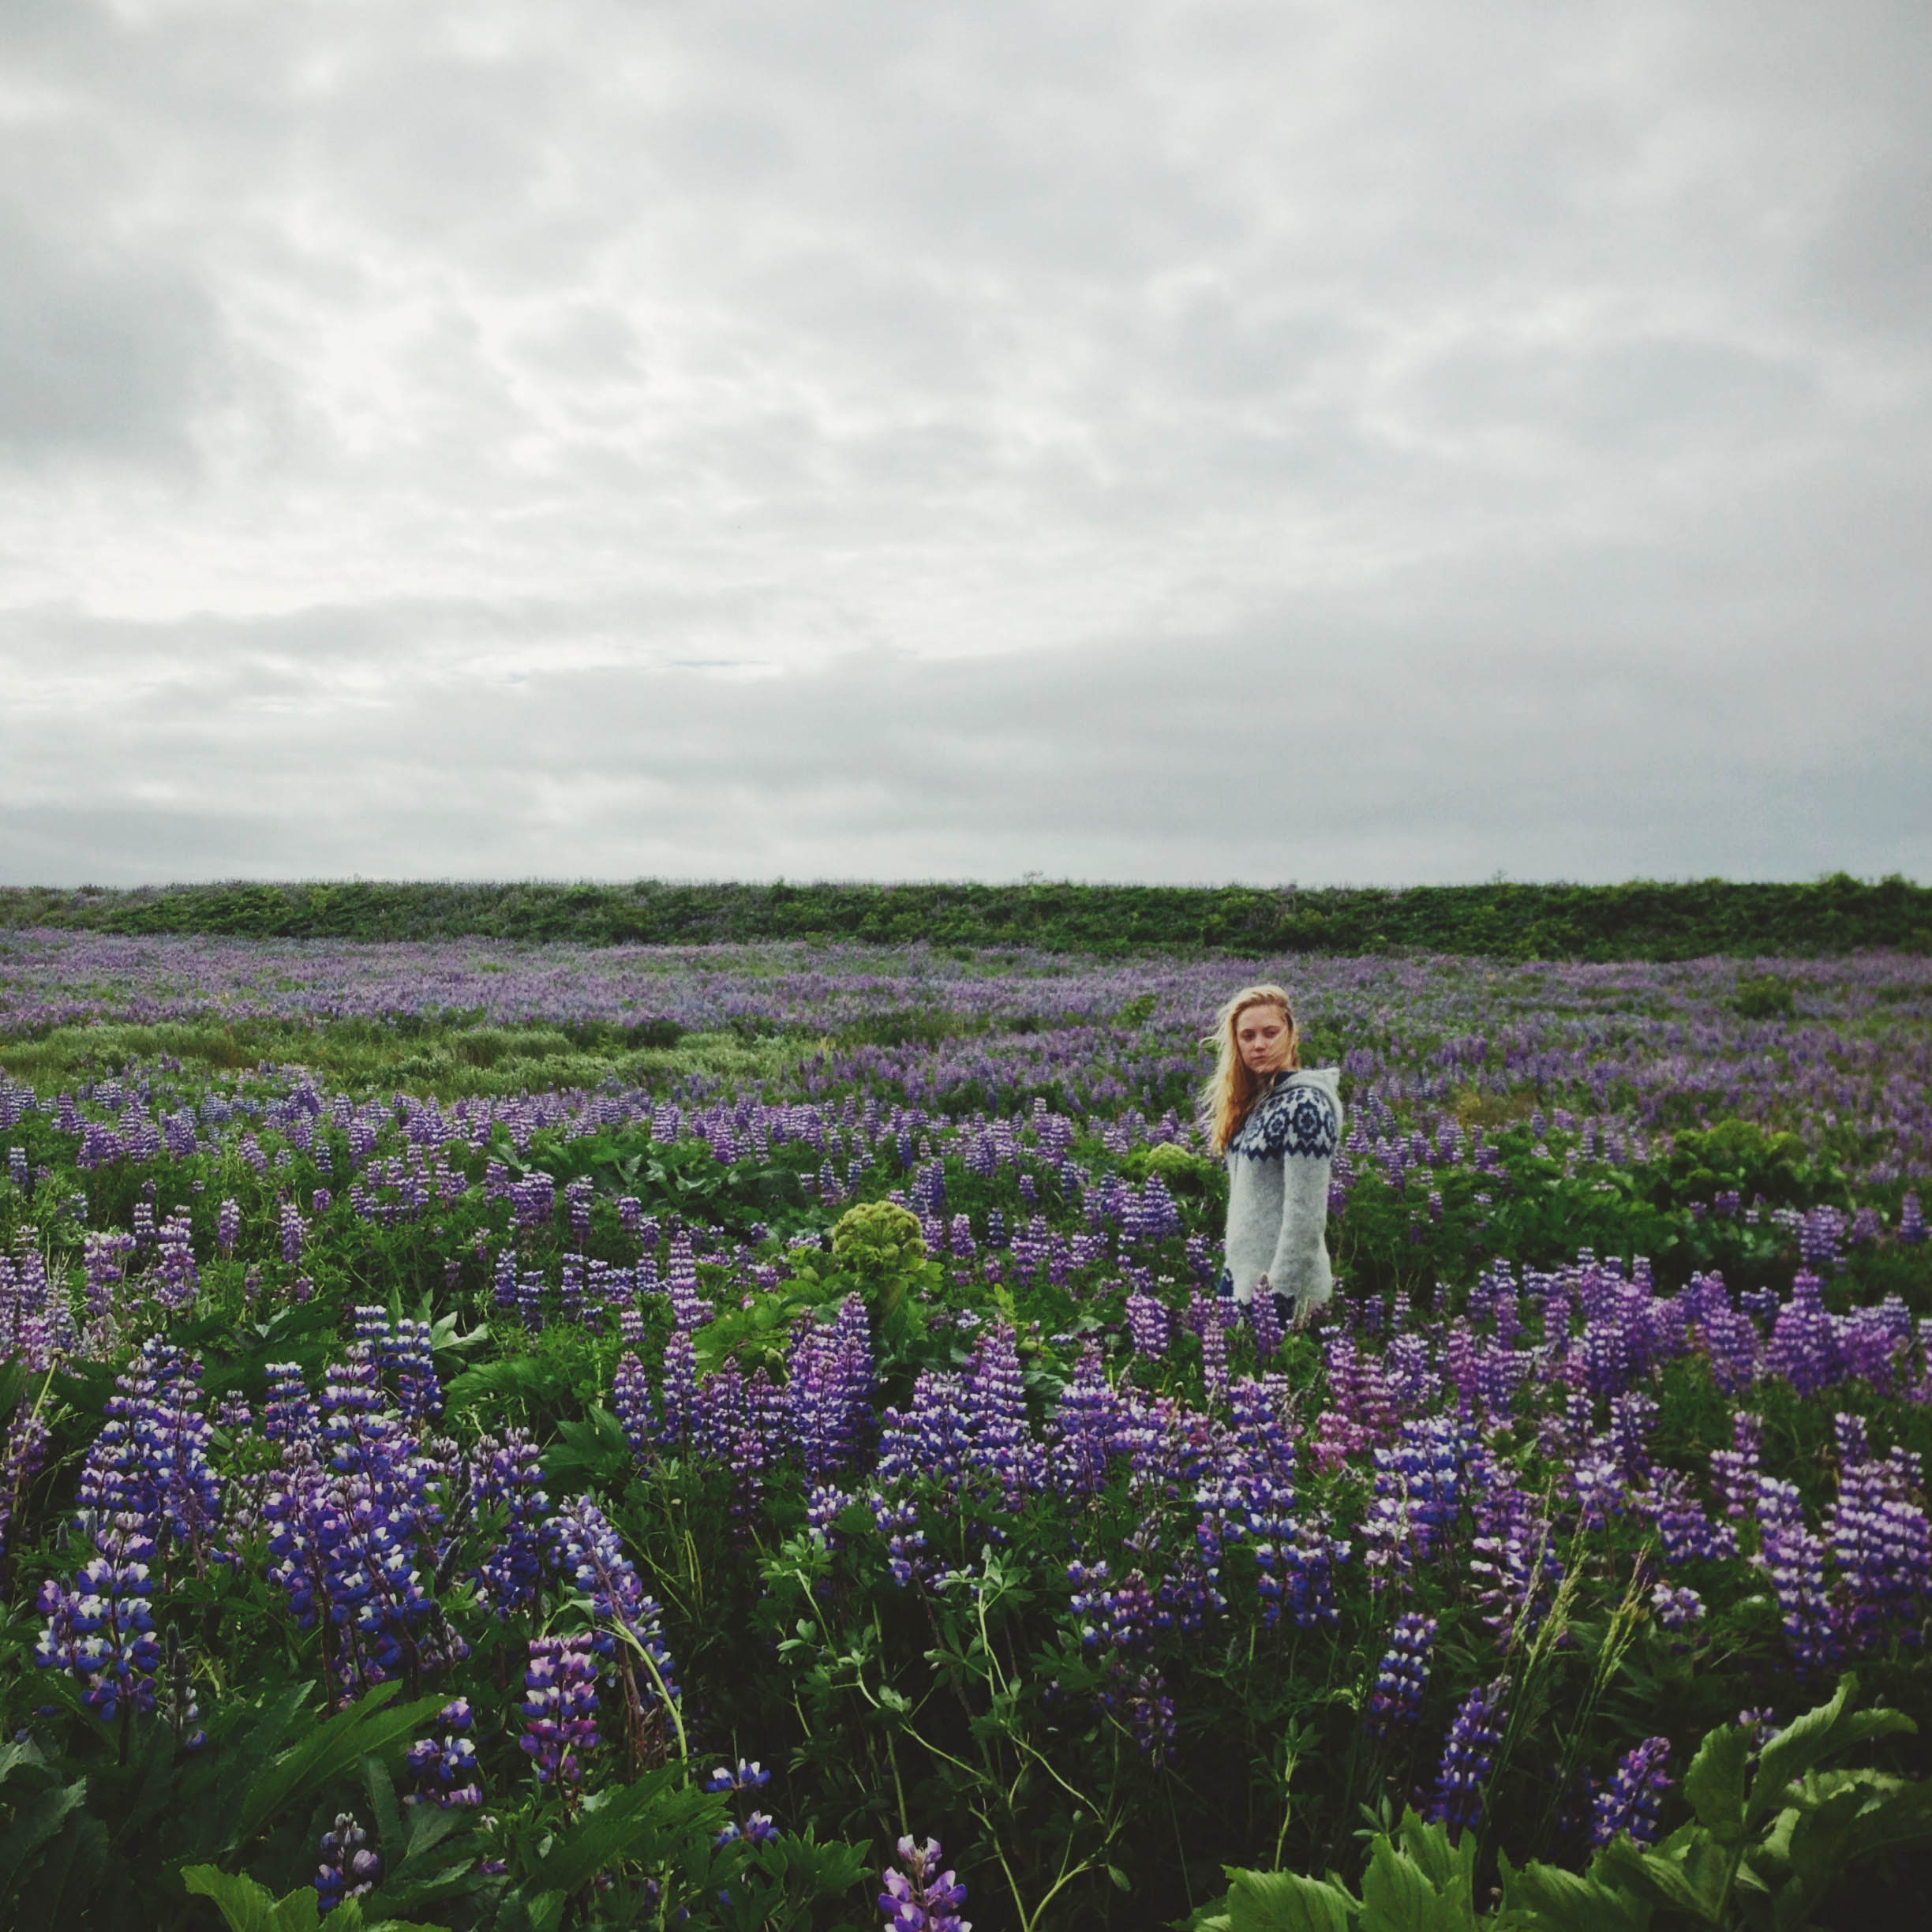 maika stands in a lupin field